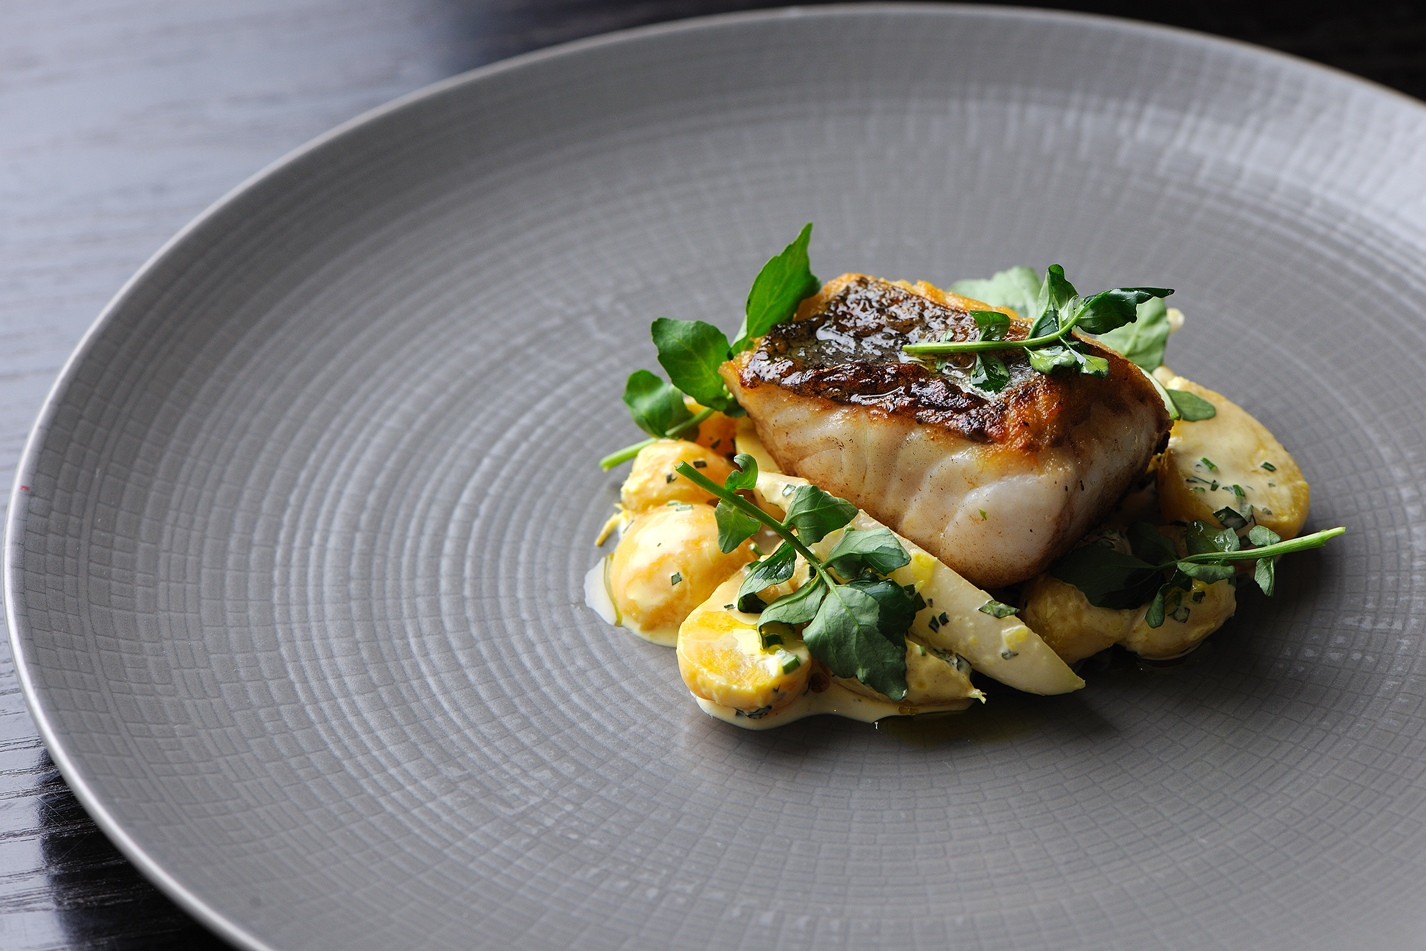 Hake fillet with golden beet and radish salad